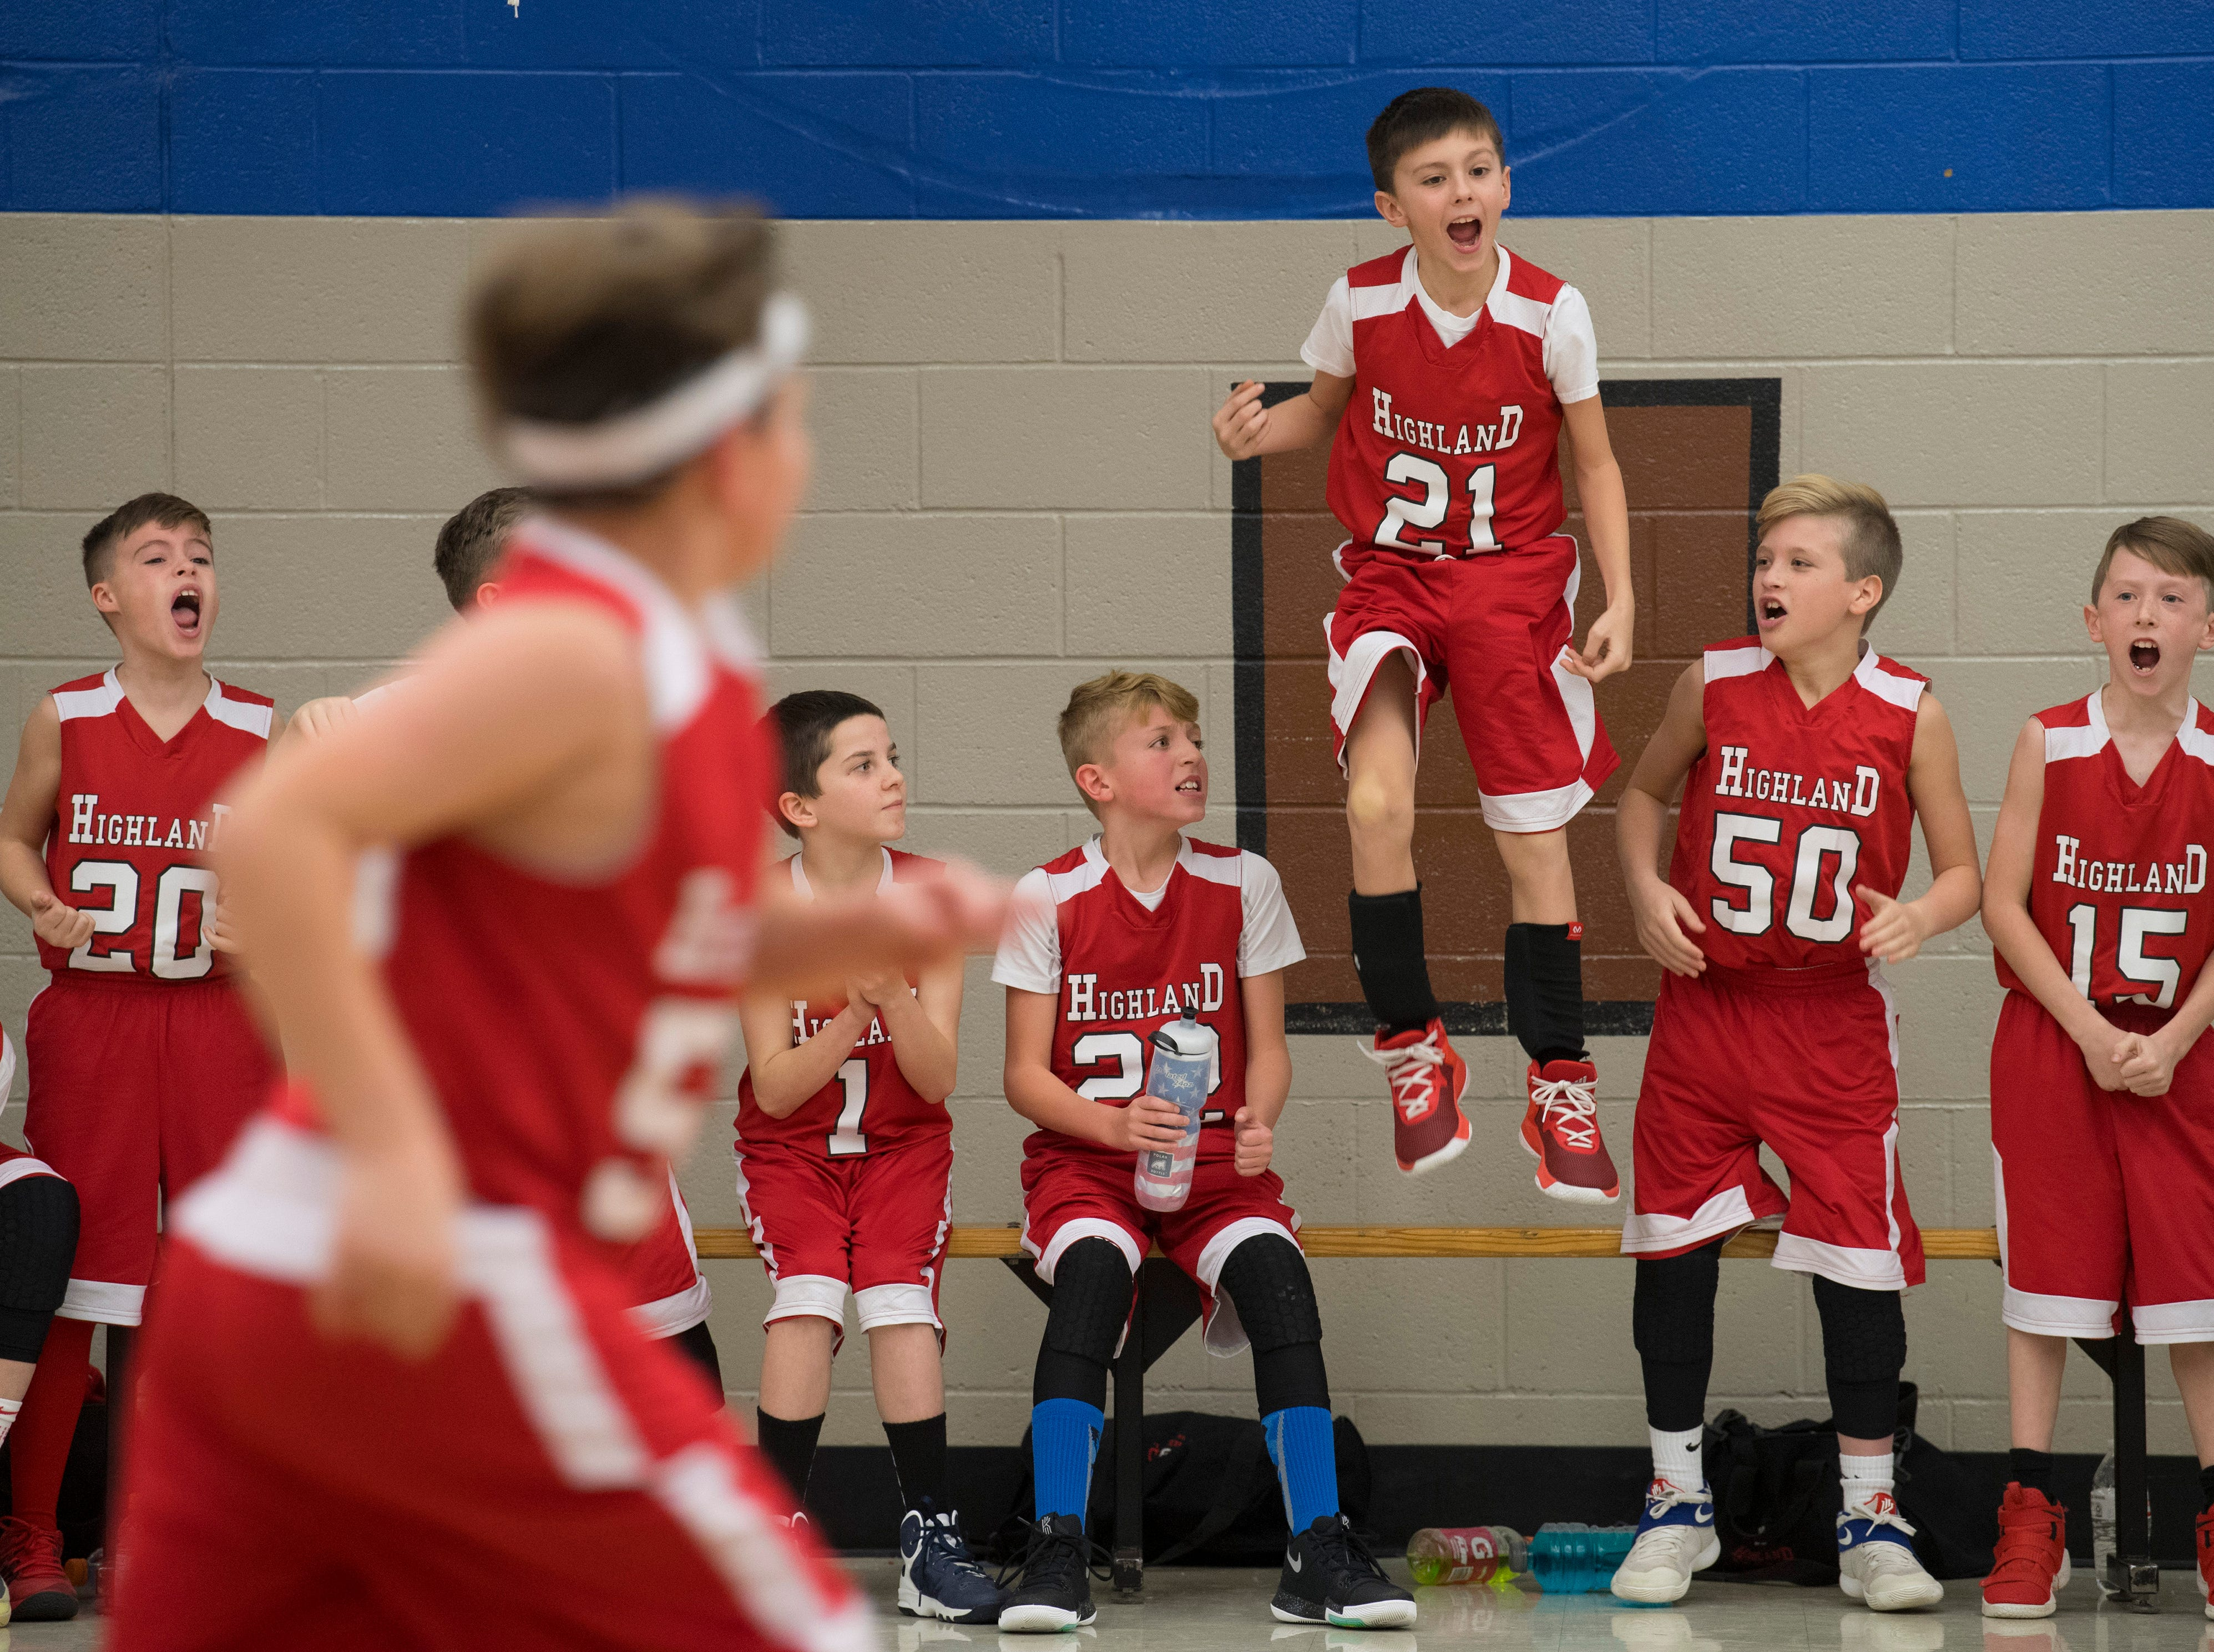 The Highland Highlanders fifth-grade basketball team's bench erupts after taking a one point lead in the final seconds of their game against the Stringtown Chargers at Stringtown Elementary School Monday evening. The Highlanders came out on top 27-26 in the nail-biter of a game.